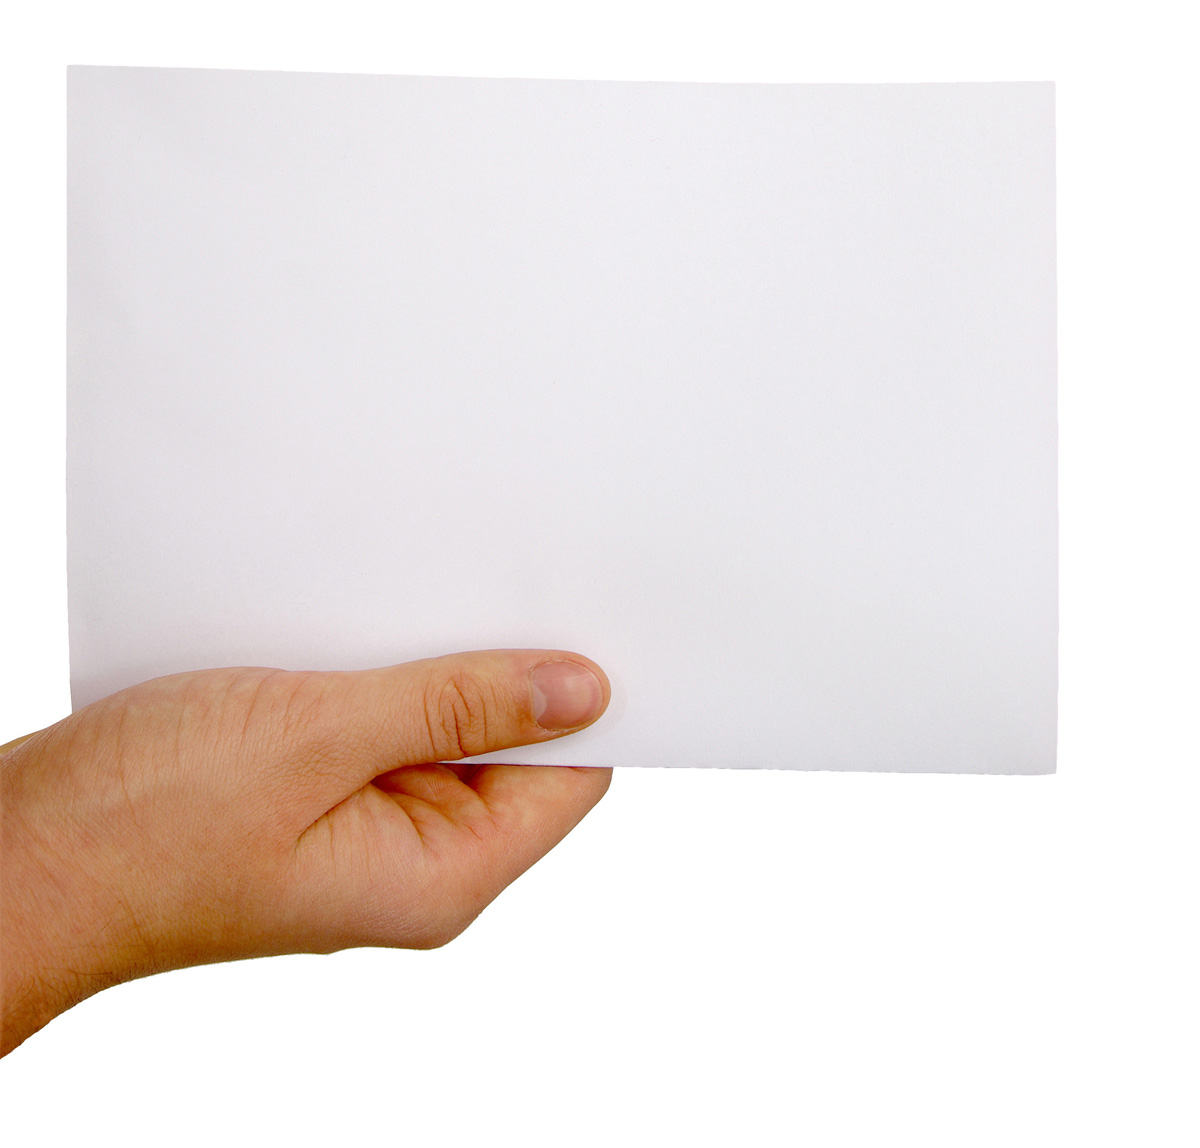 Holding paper picture 25652